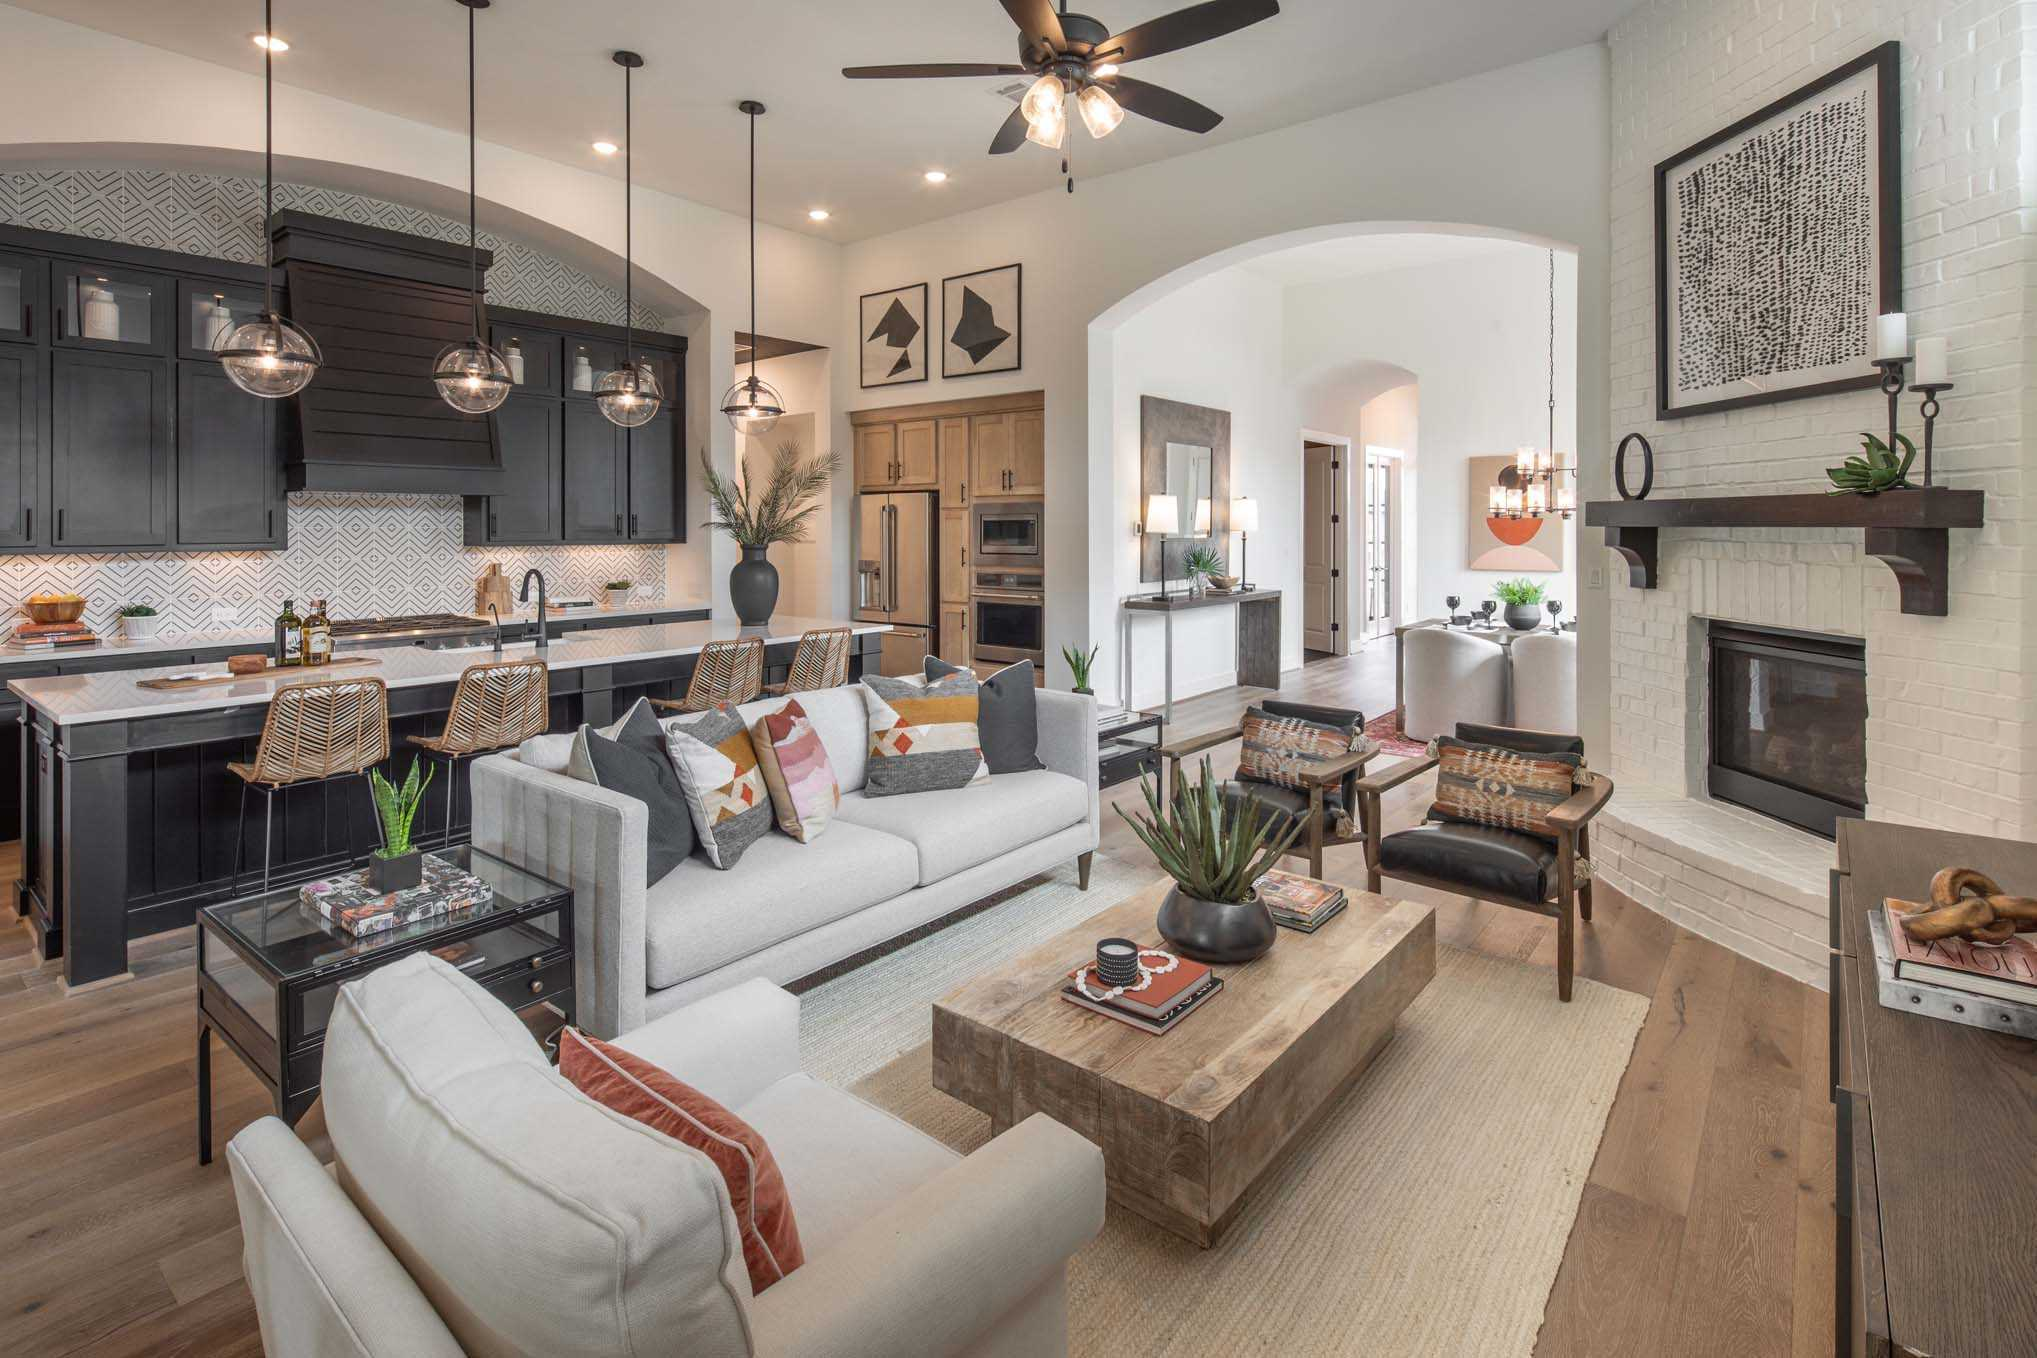 Living Area featured in the Plan 215 By Highland Homes in Houston, TX